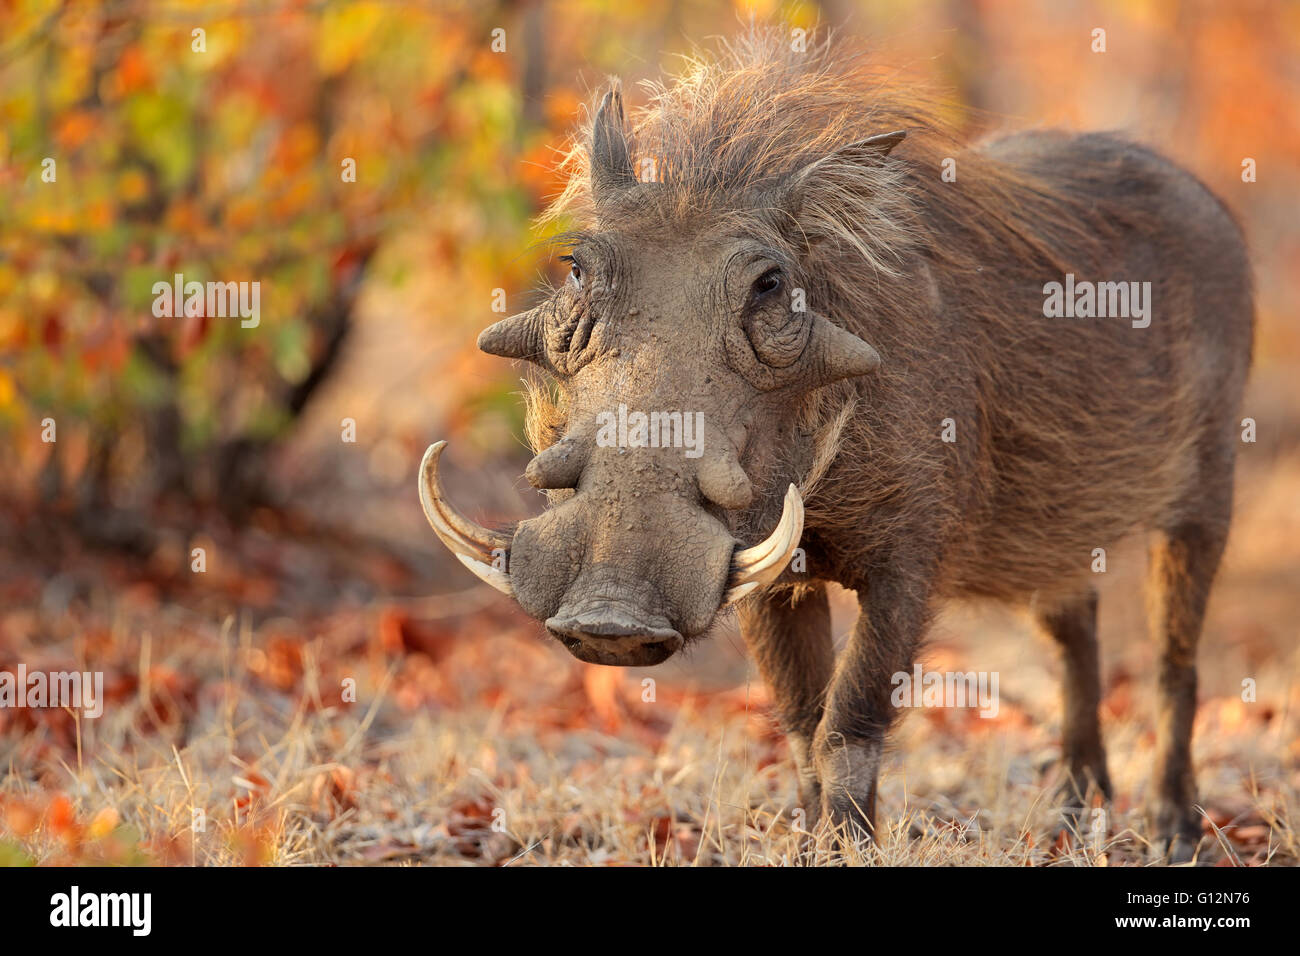 Warthog (Phacochoerus africanus) in habitat naturale, il Parco Nazionale Kruger, Sud Africa Immagini Stock